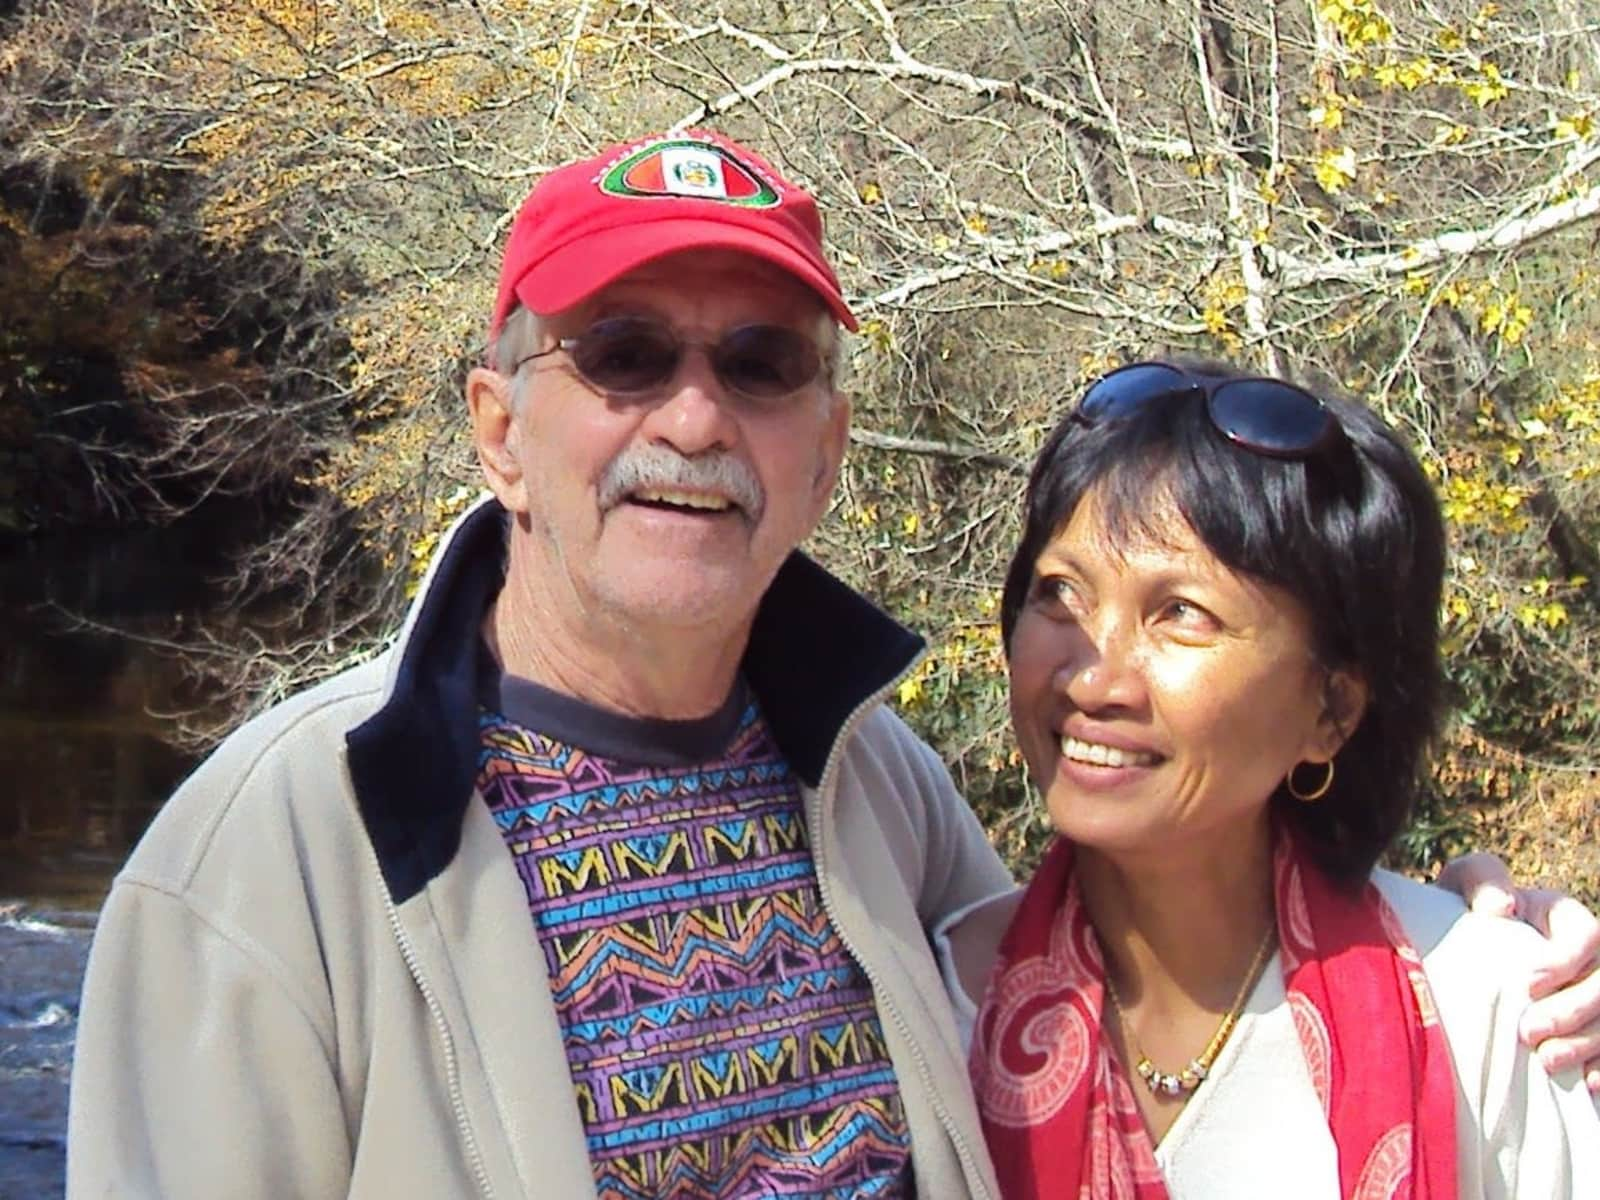 Sri & Tom from Vancouver, British Columbia, Canada